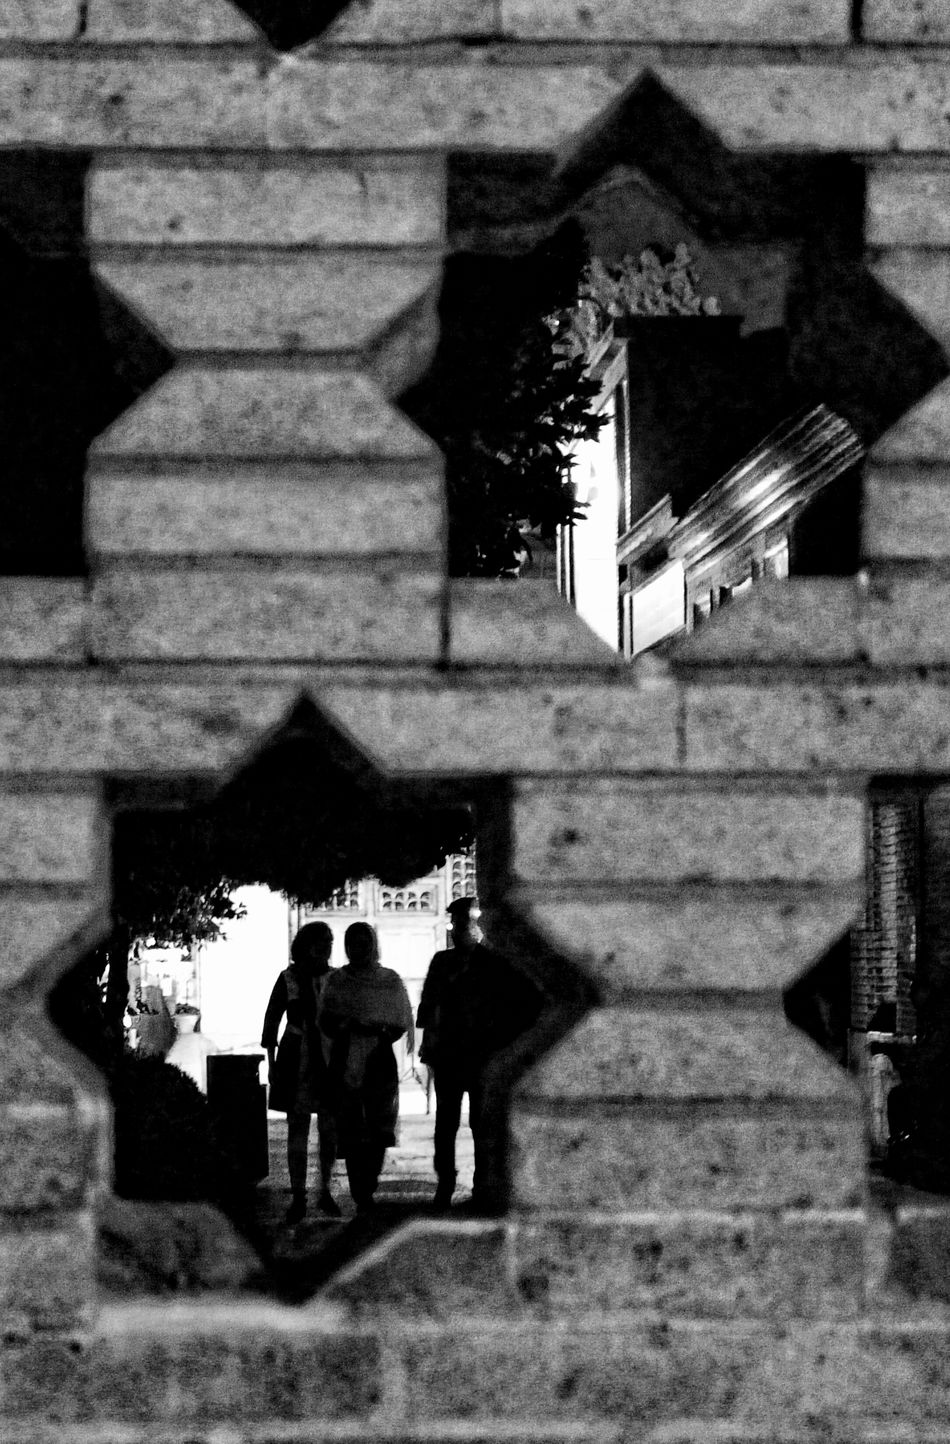 Rules in life.. Minimalist Hidden Gems  43 Golden Moments Freedom From My Point Of View Abstract Scenics Shiraz, Iran People People Photography Black&white Black And White Girl Woman HUMANITY Black & White People Together Rules Rules Of Life